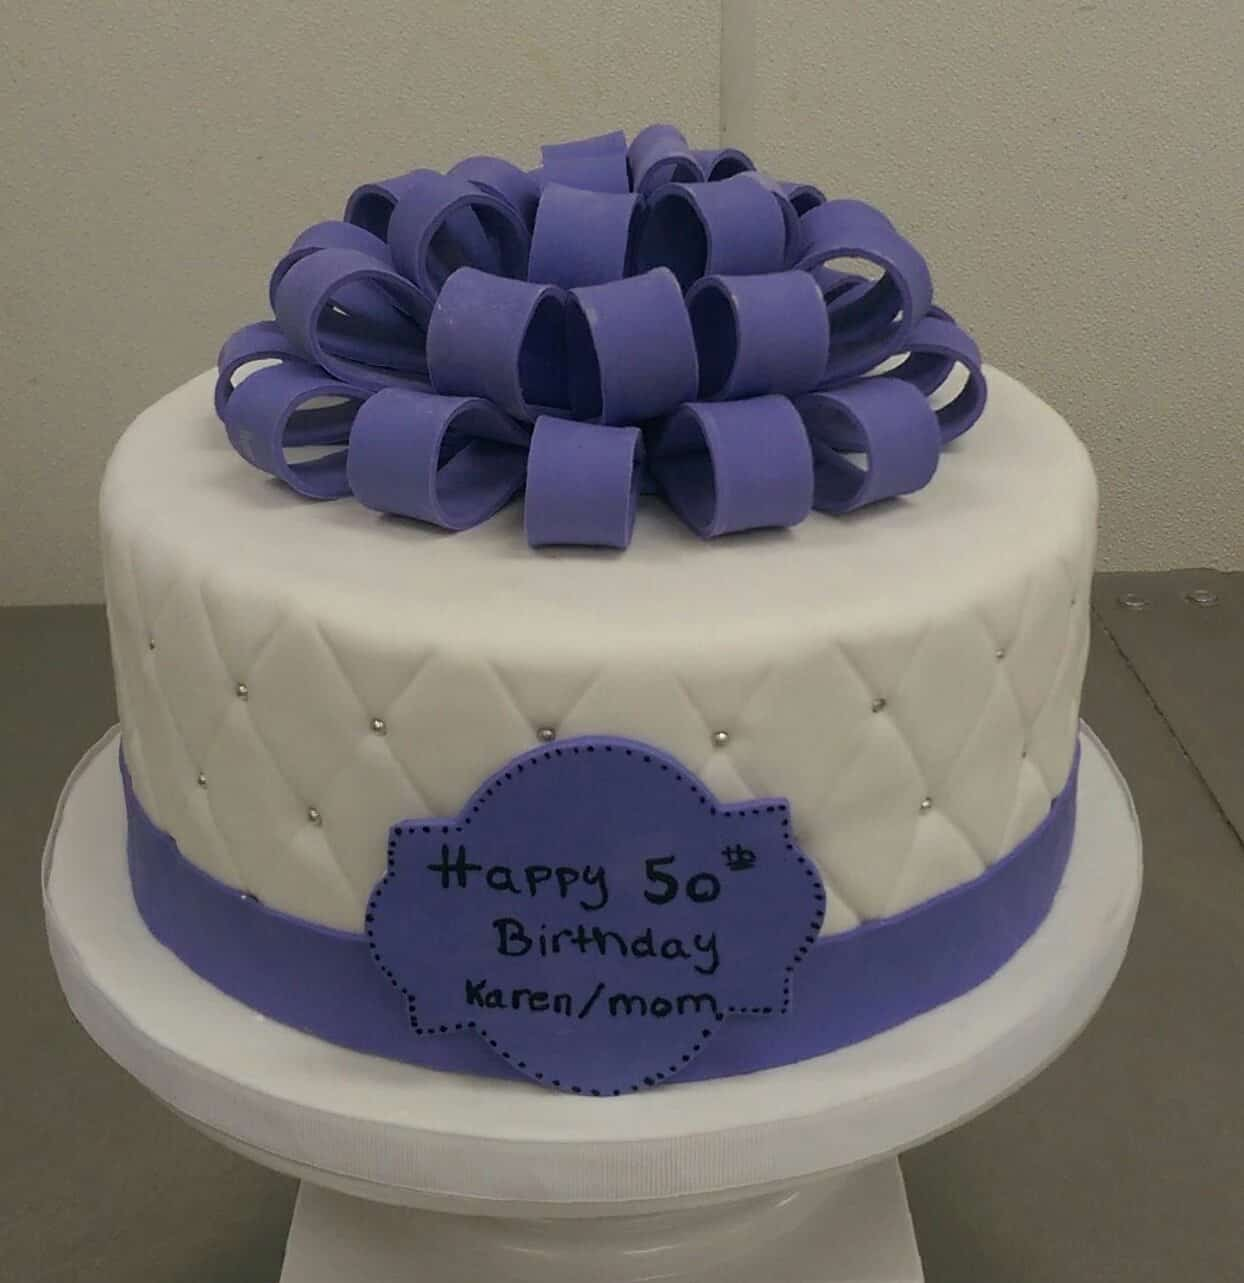 For All Cake Orders Please Call Our Catering Line At 416 299 1174